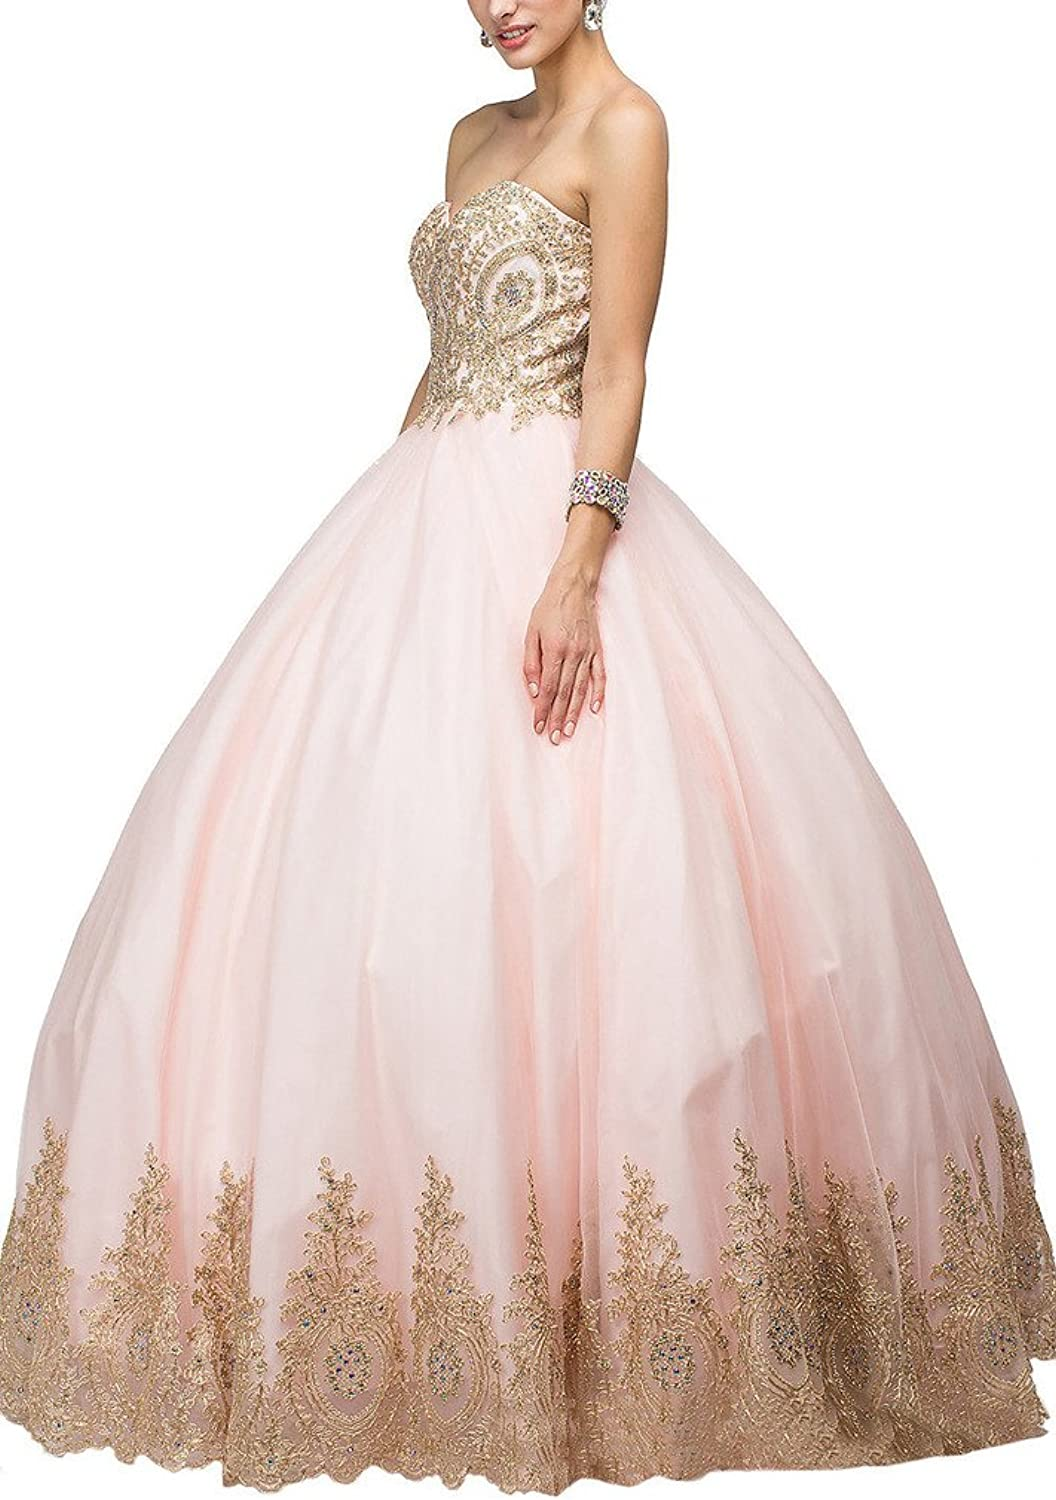 Dearta Women's Ball Gown Sweetheart Tulle Corset Prom Quinceanera Dresses Gowns